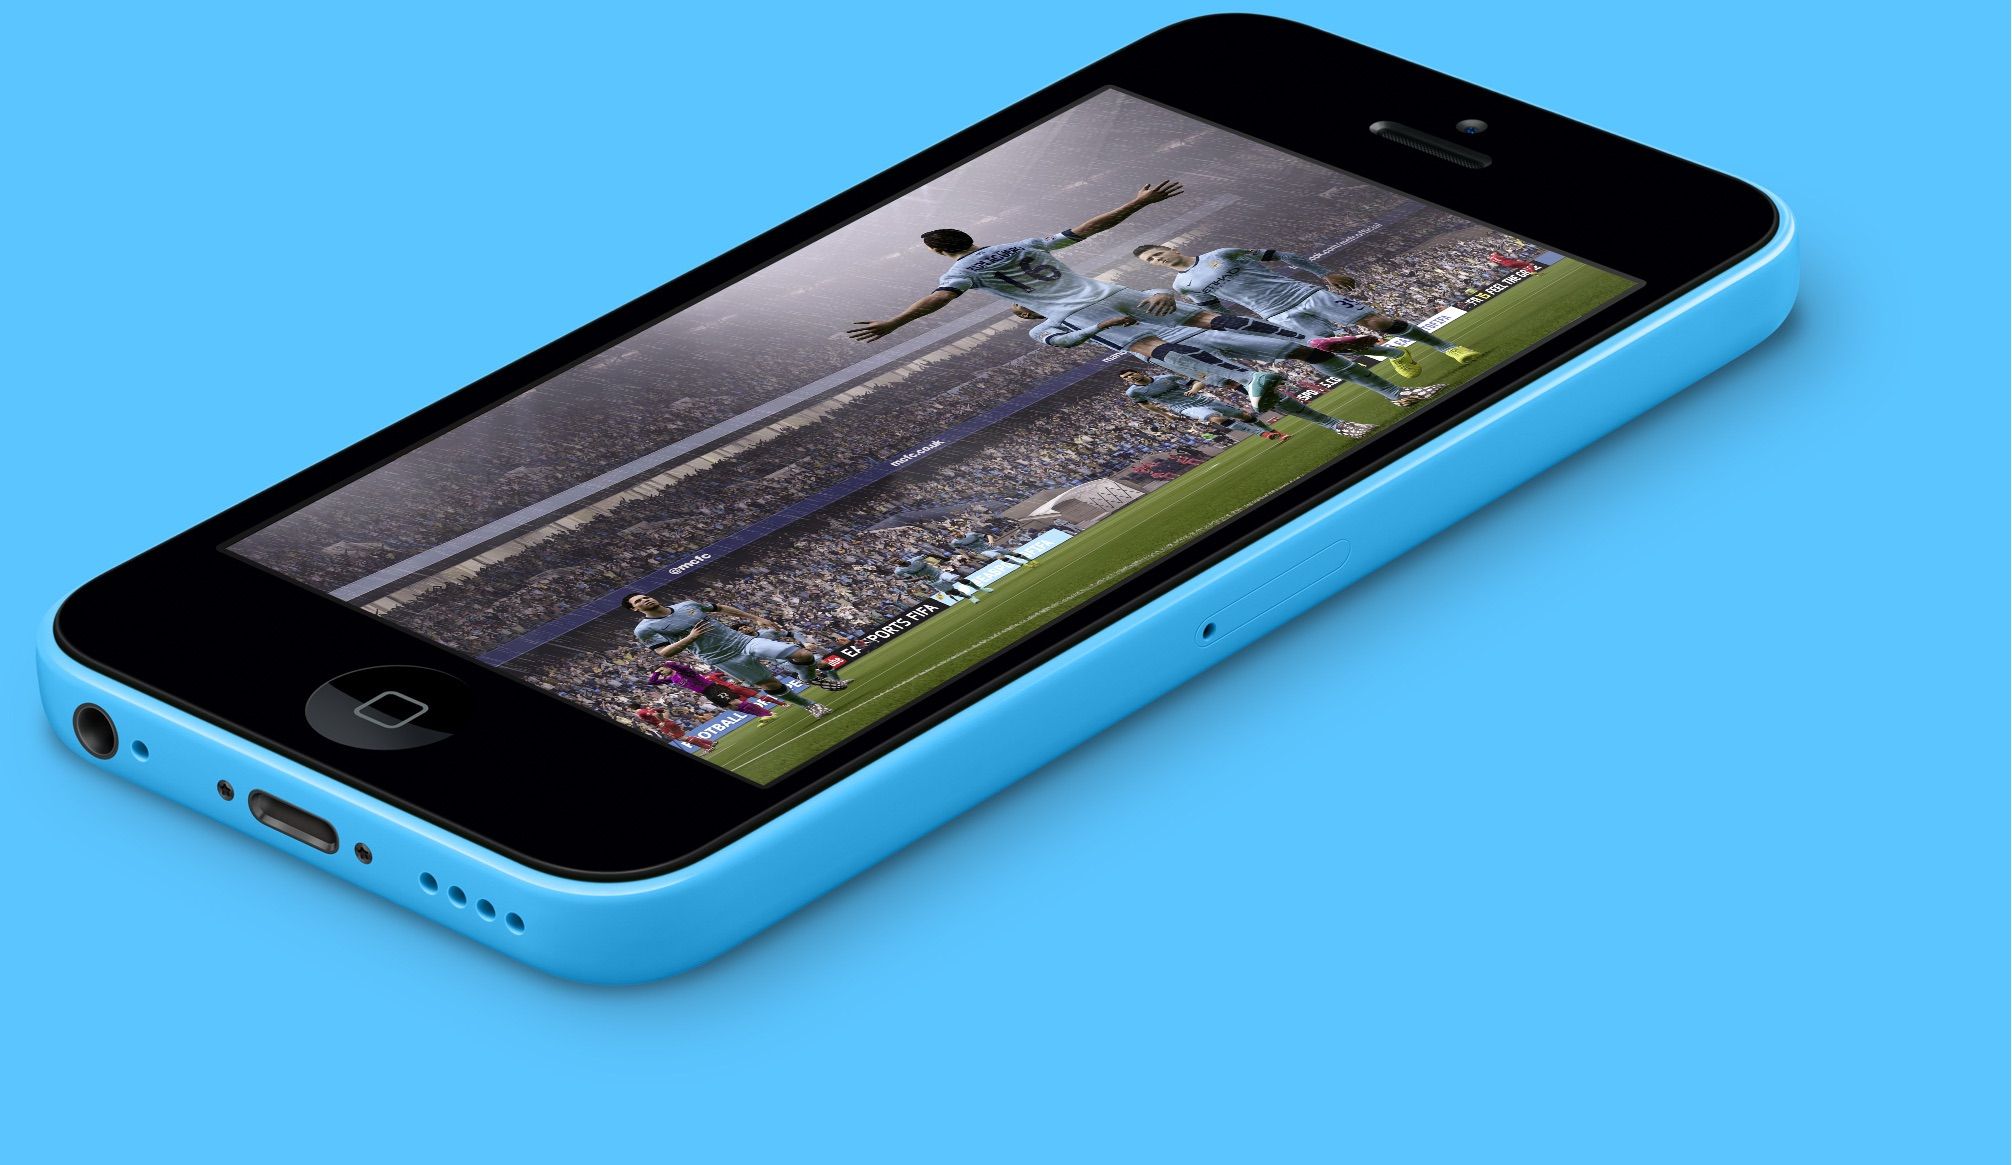 EA SPORTS FIFA Mobie on iPhone 5c